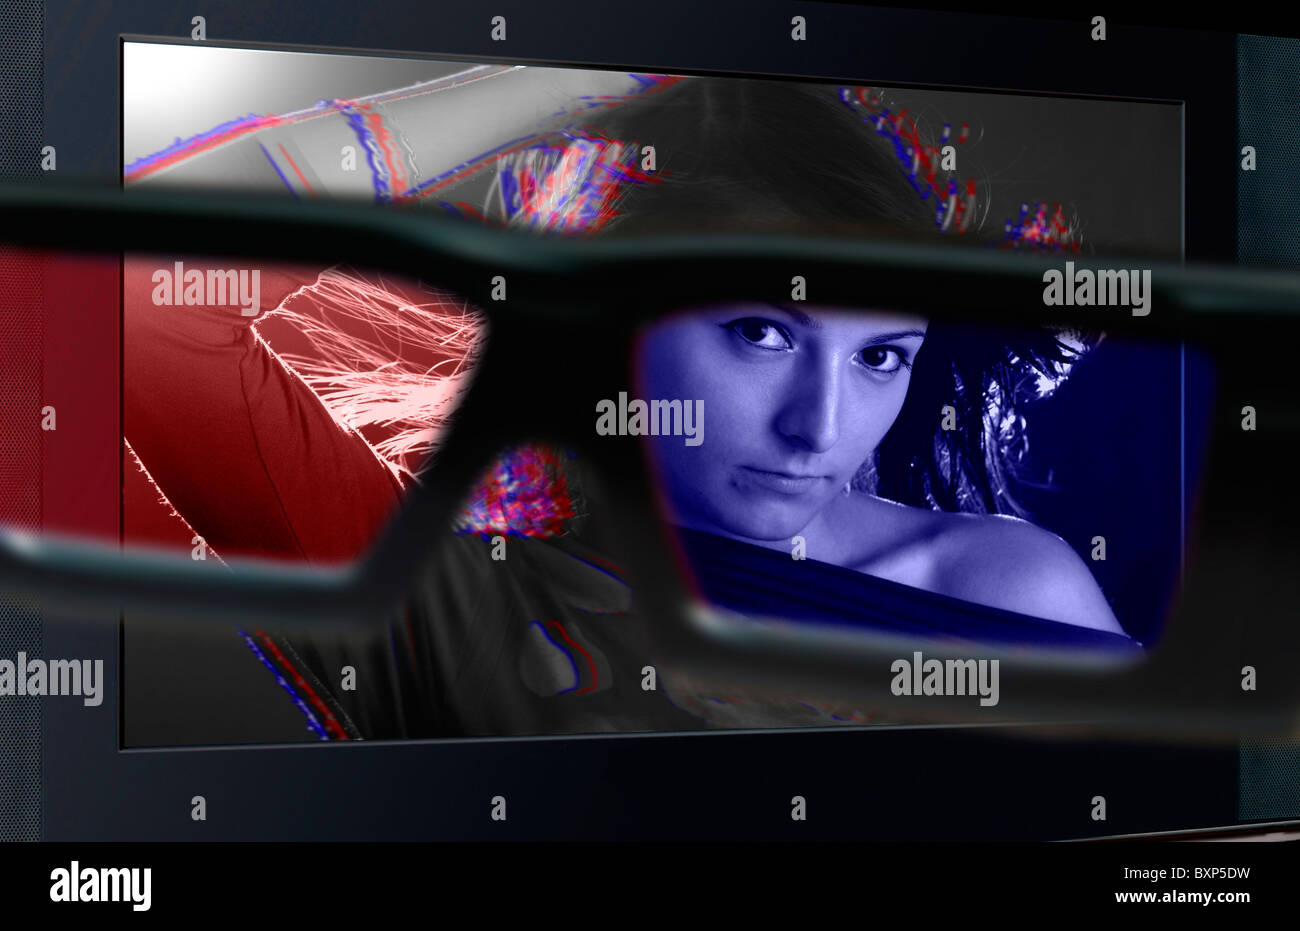 Glasses 3D in front of the TV with a woman. 3D television. - Stock Image